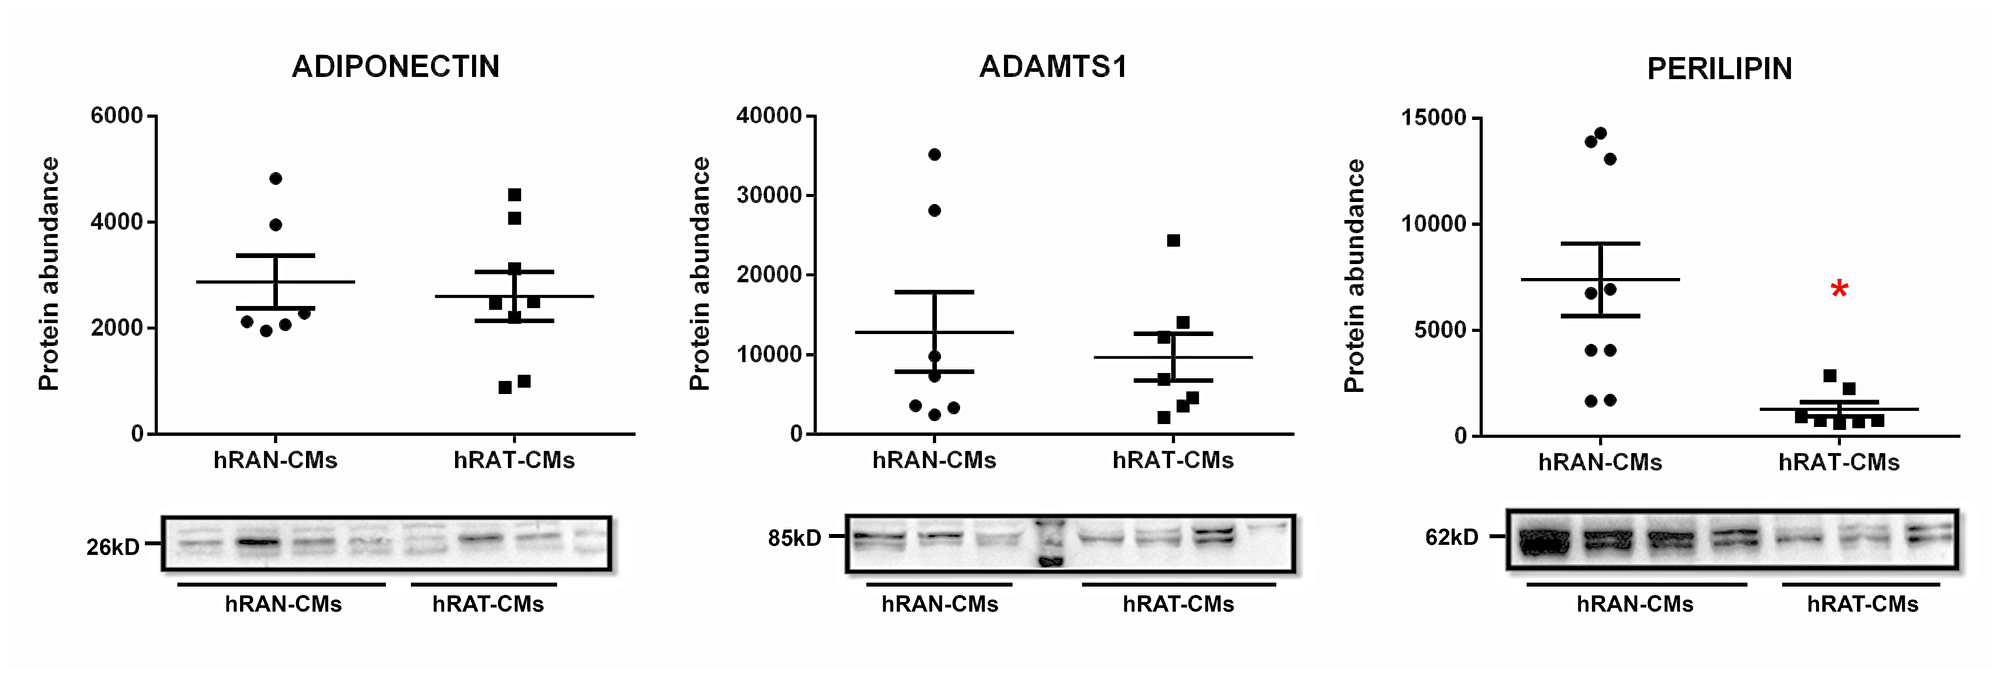 Adiponectin, ADAMTS1 and perilipin 1 in hRAN- and hRAT-CMs.